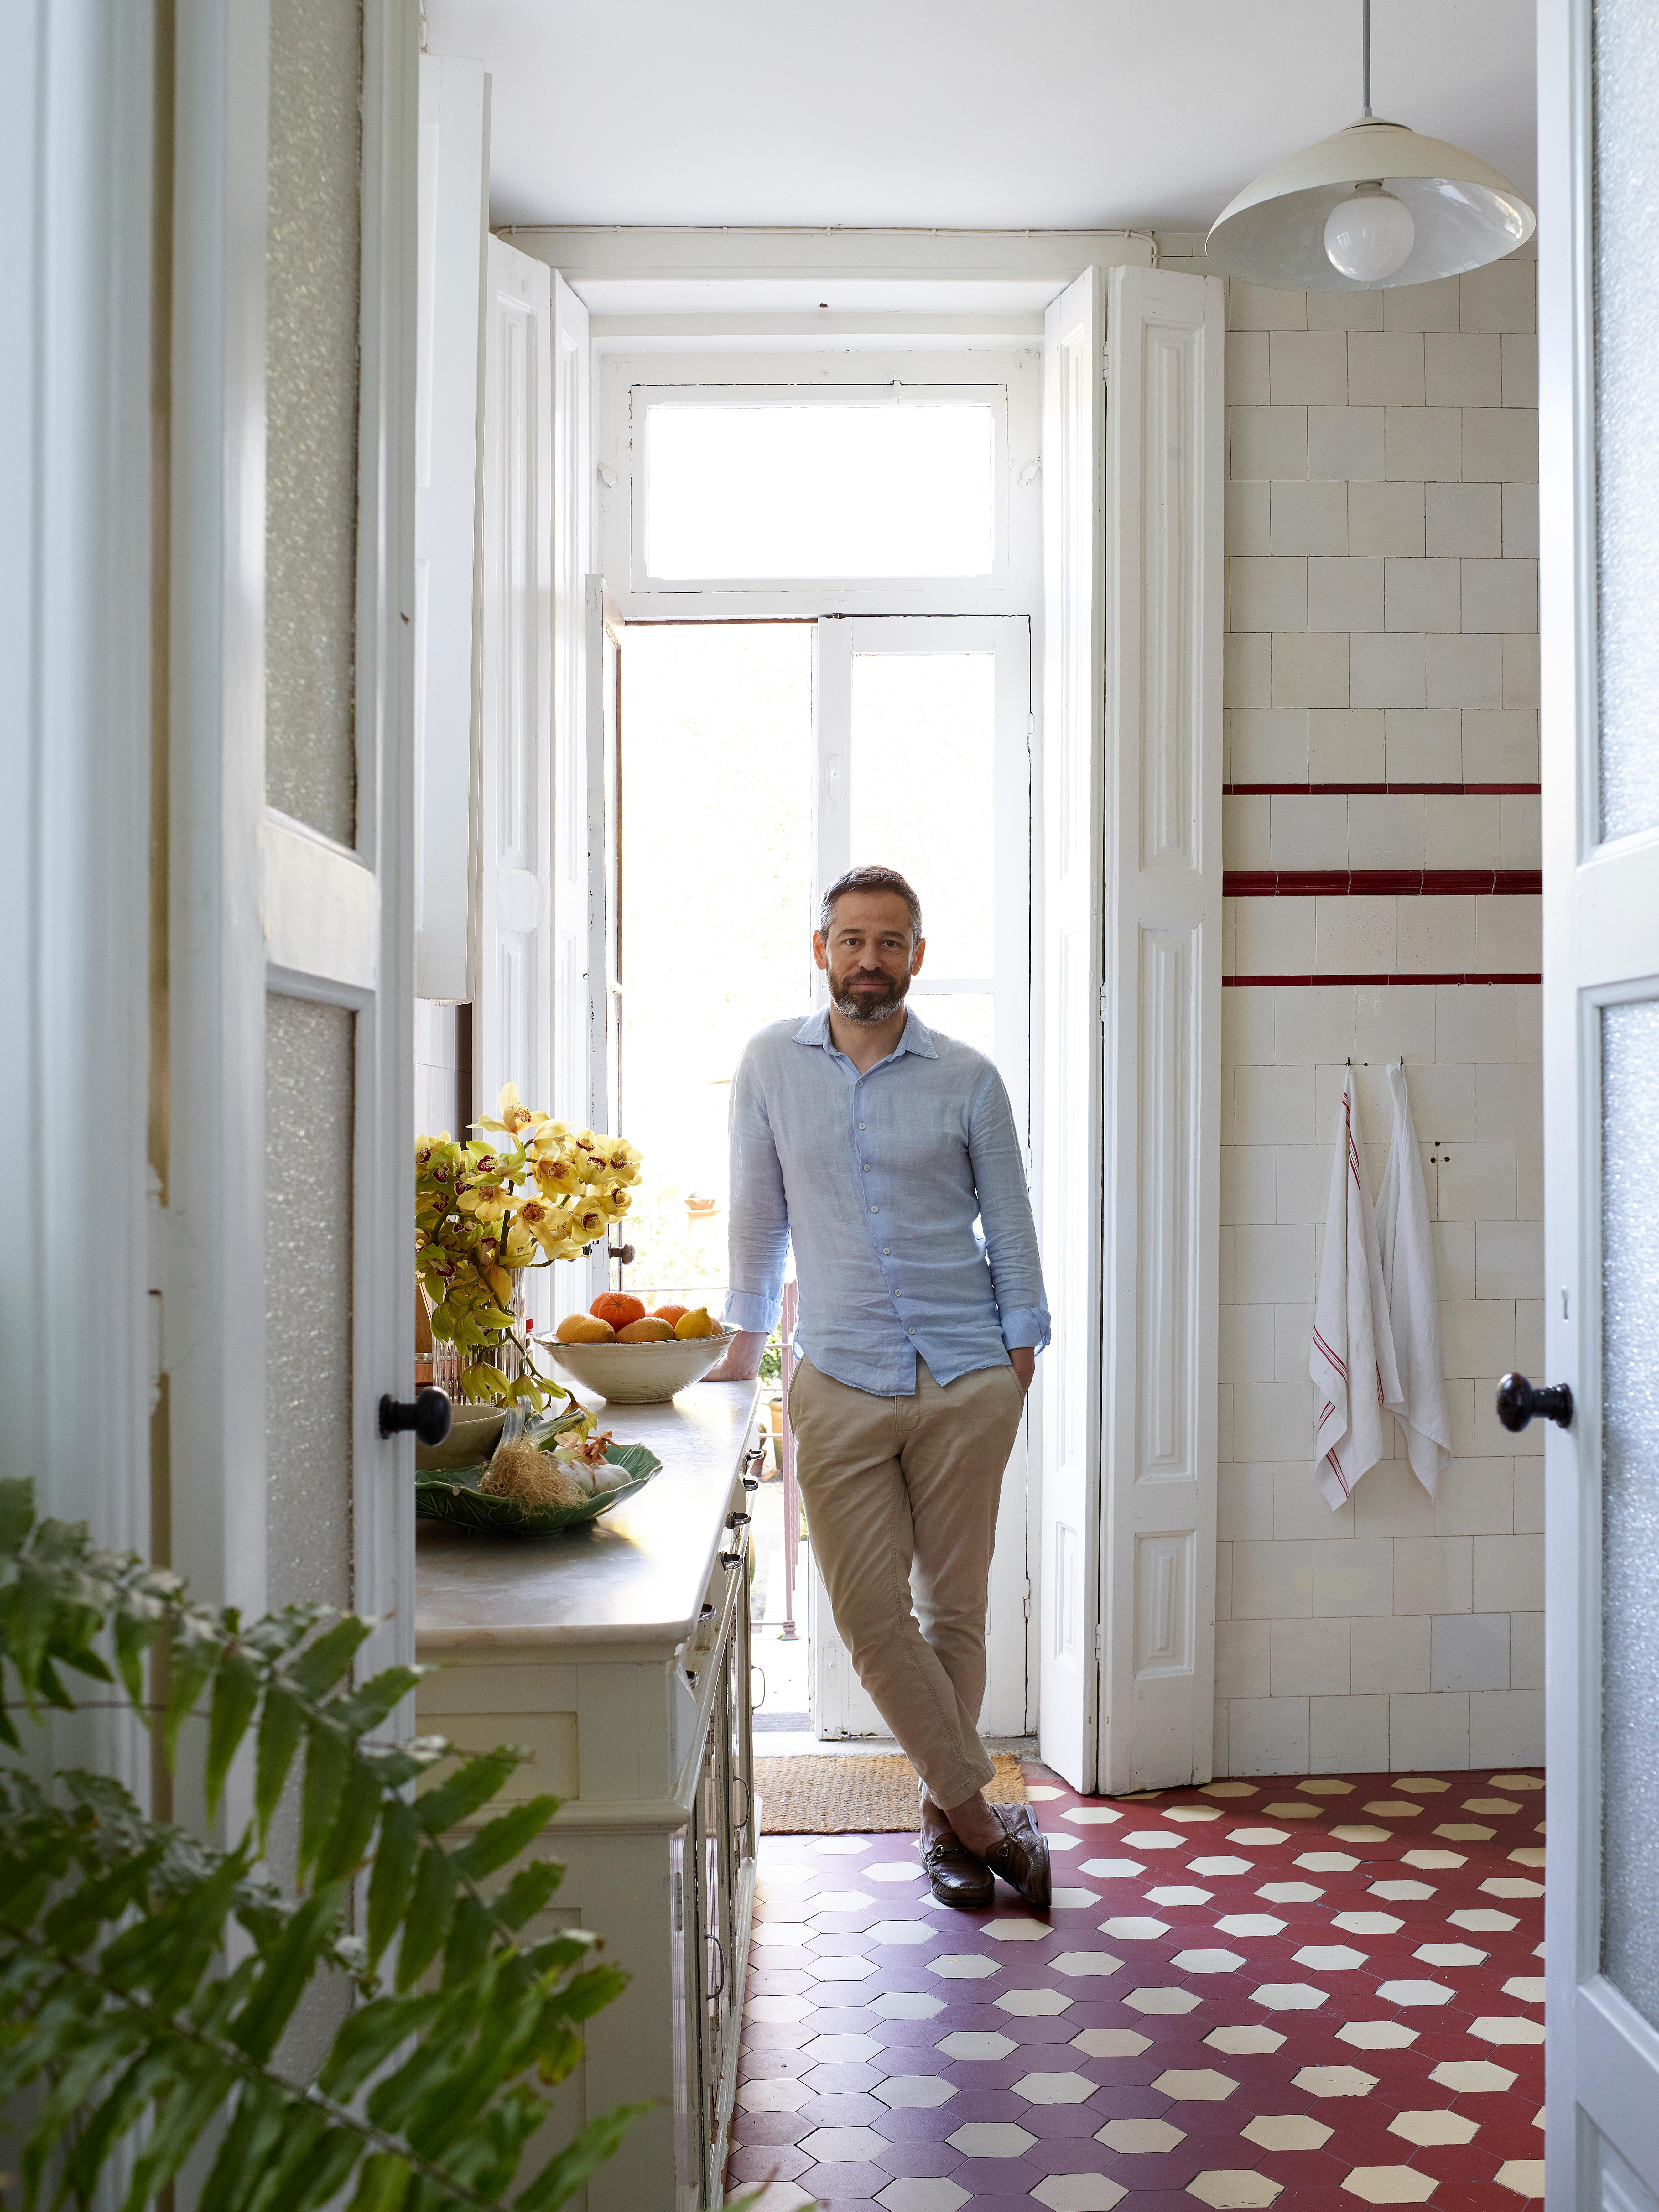 Porto call: a classic 1930s townhouse packed with vintage finds